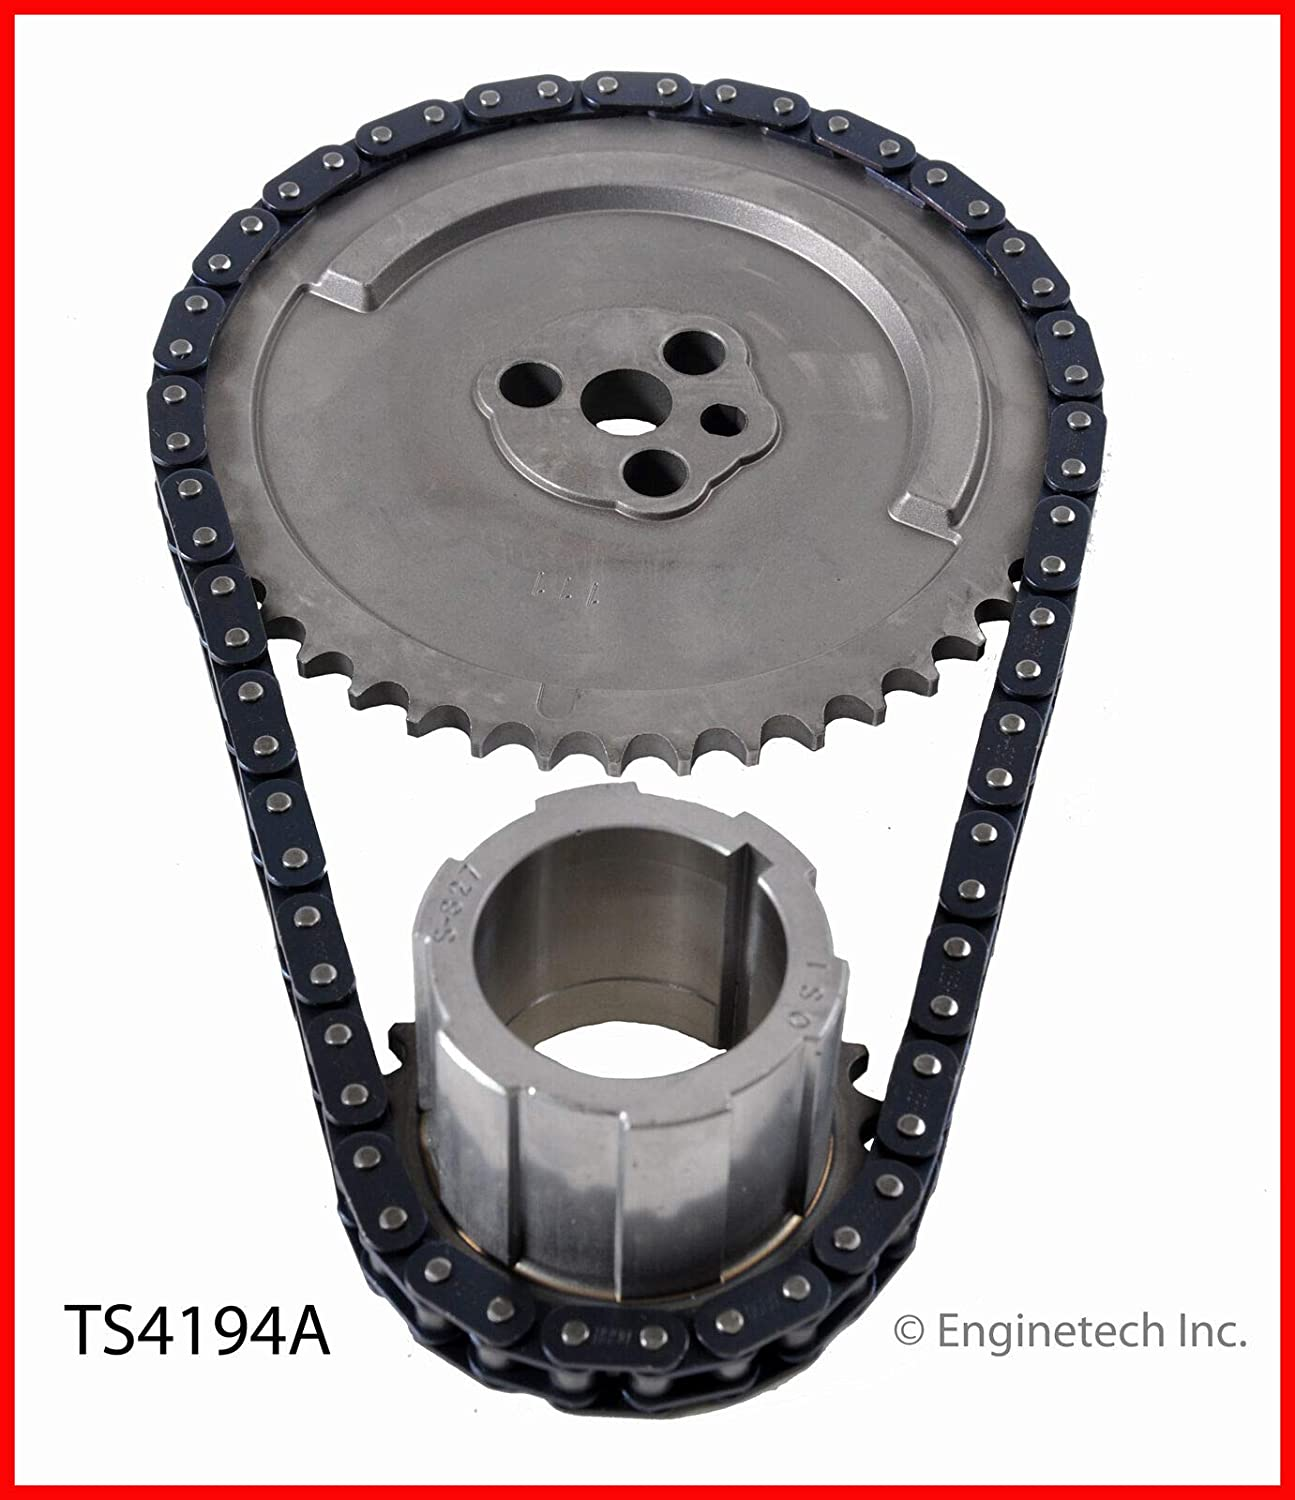 ENGINETECH CHEVY GENIII 4.8 5.3 5.7 6.0 6.2 REAR COVER GASKET AND SEAL